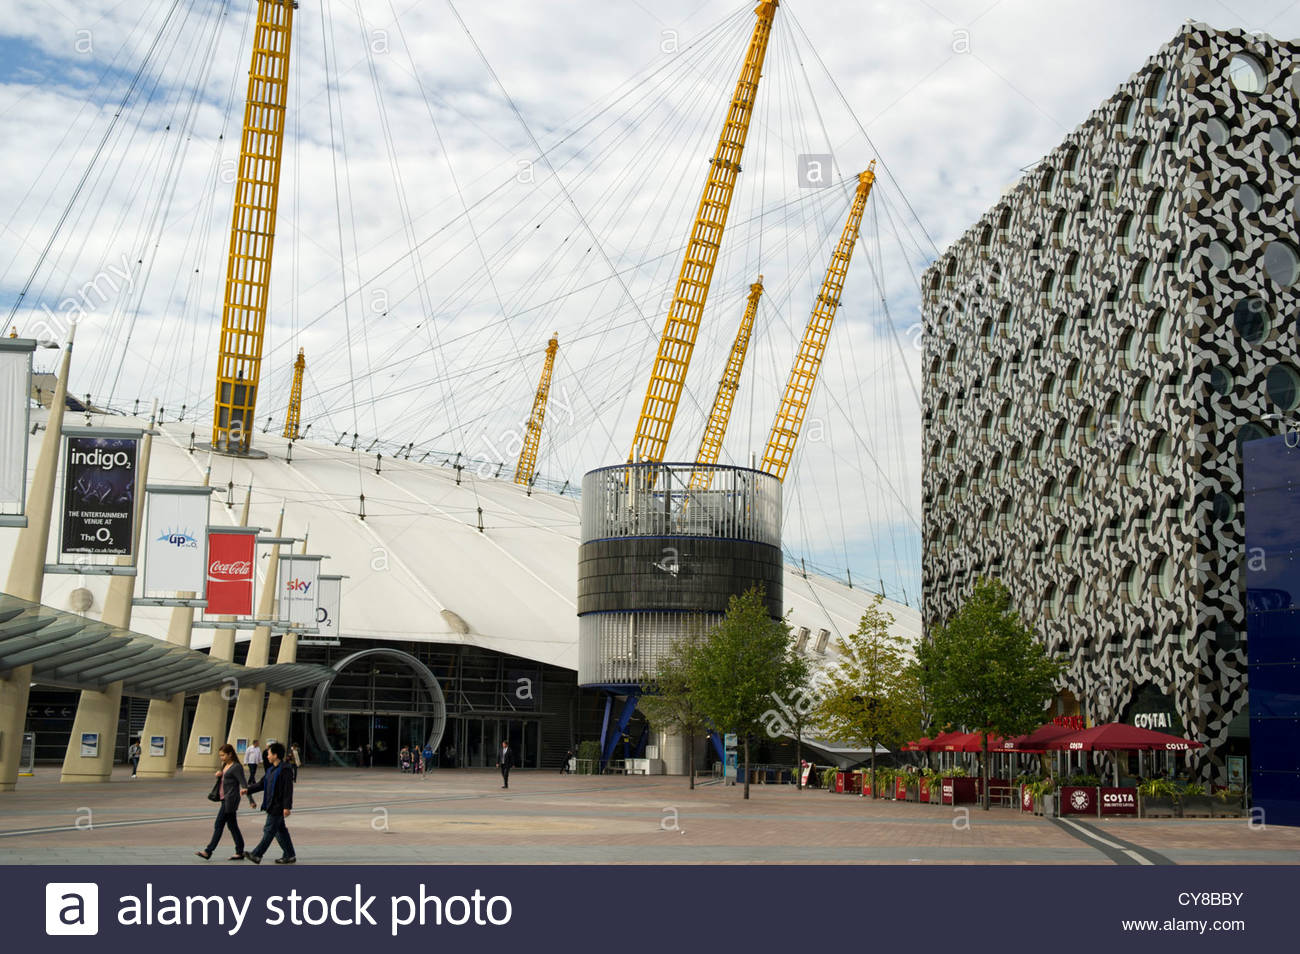 The Millenium Dome, now the O2 Arena in North Greenwich, London - Stock Image